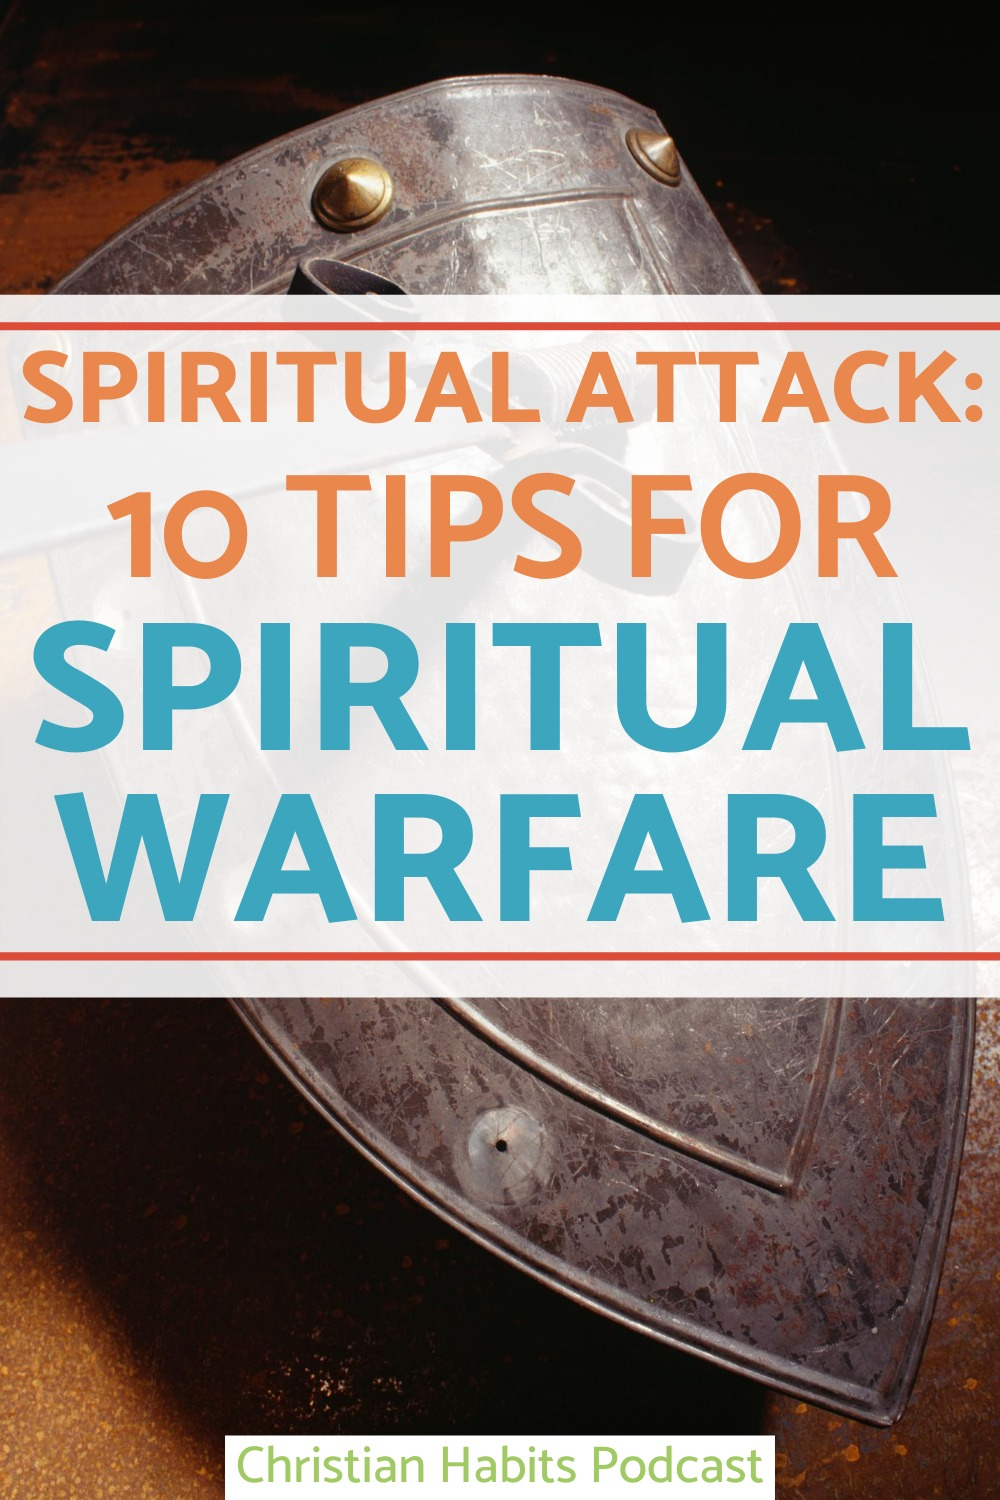 On today's episode of the Christian Habits Podcast, we're looking at spiritual attack and spiritual warfare. We'll study what it is, how to face it and what we can learn.